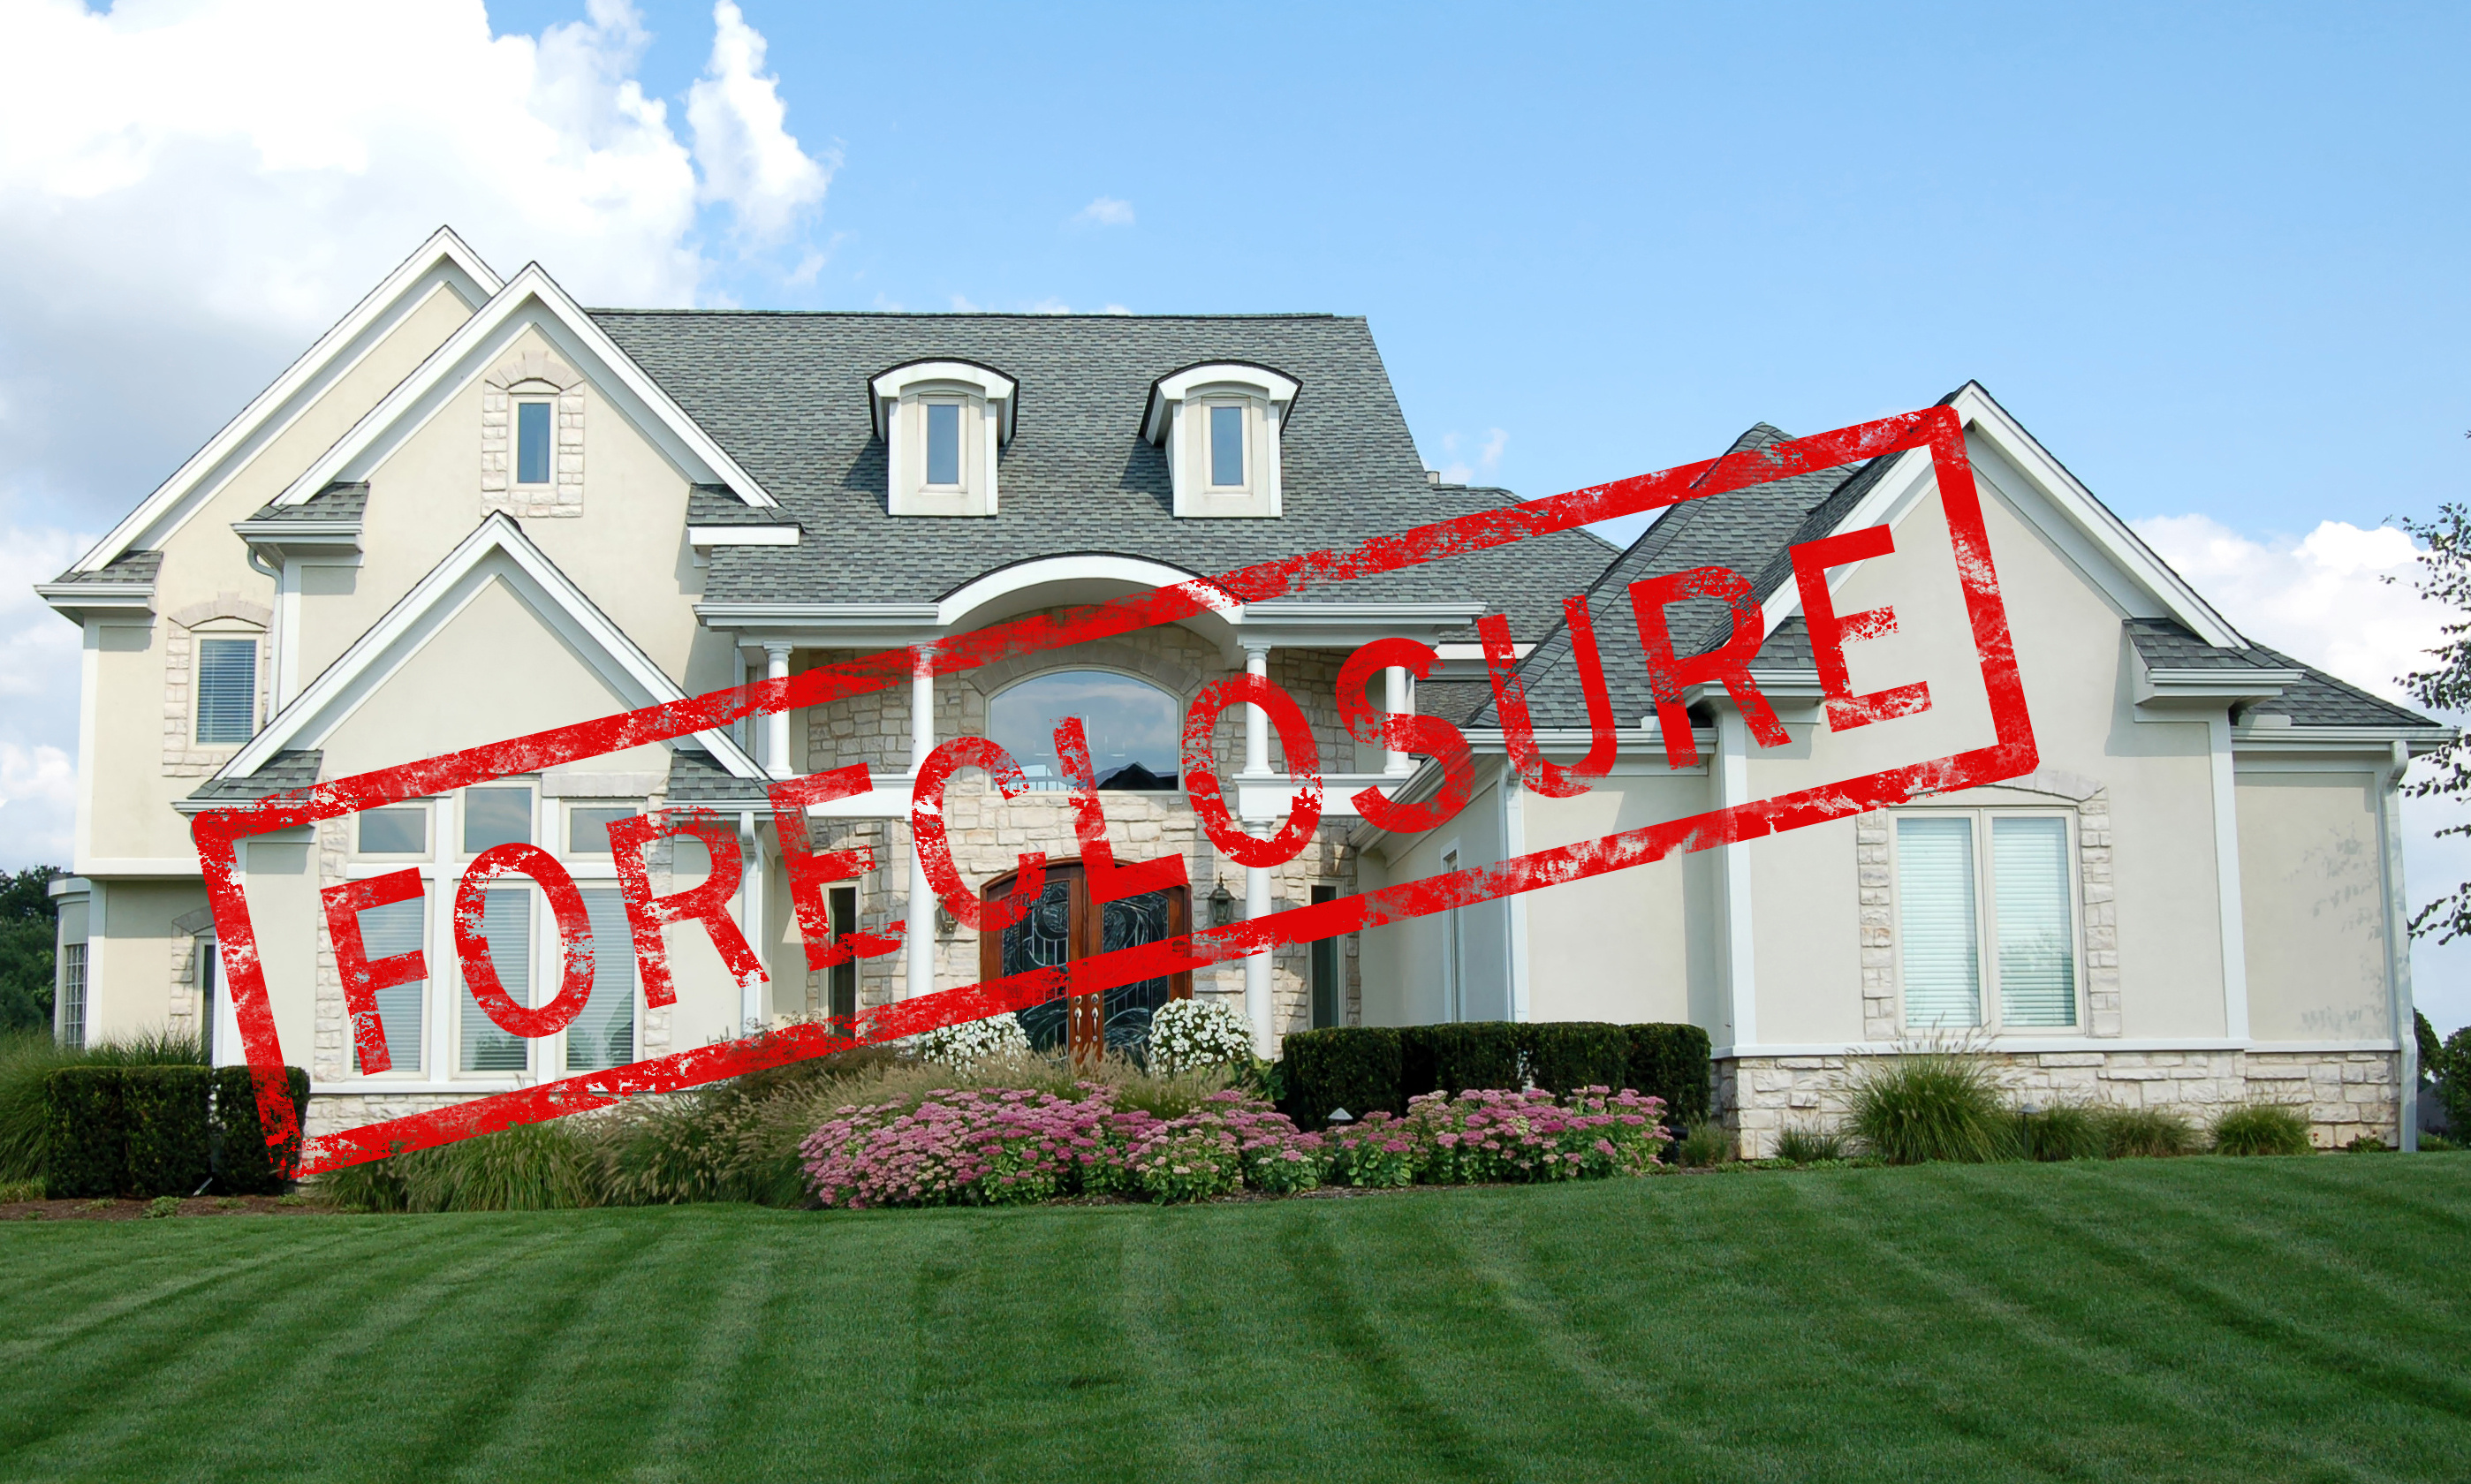 Call All State Appraisal Partners, Inc. when you need appraisals of Iredell foreclosures